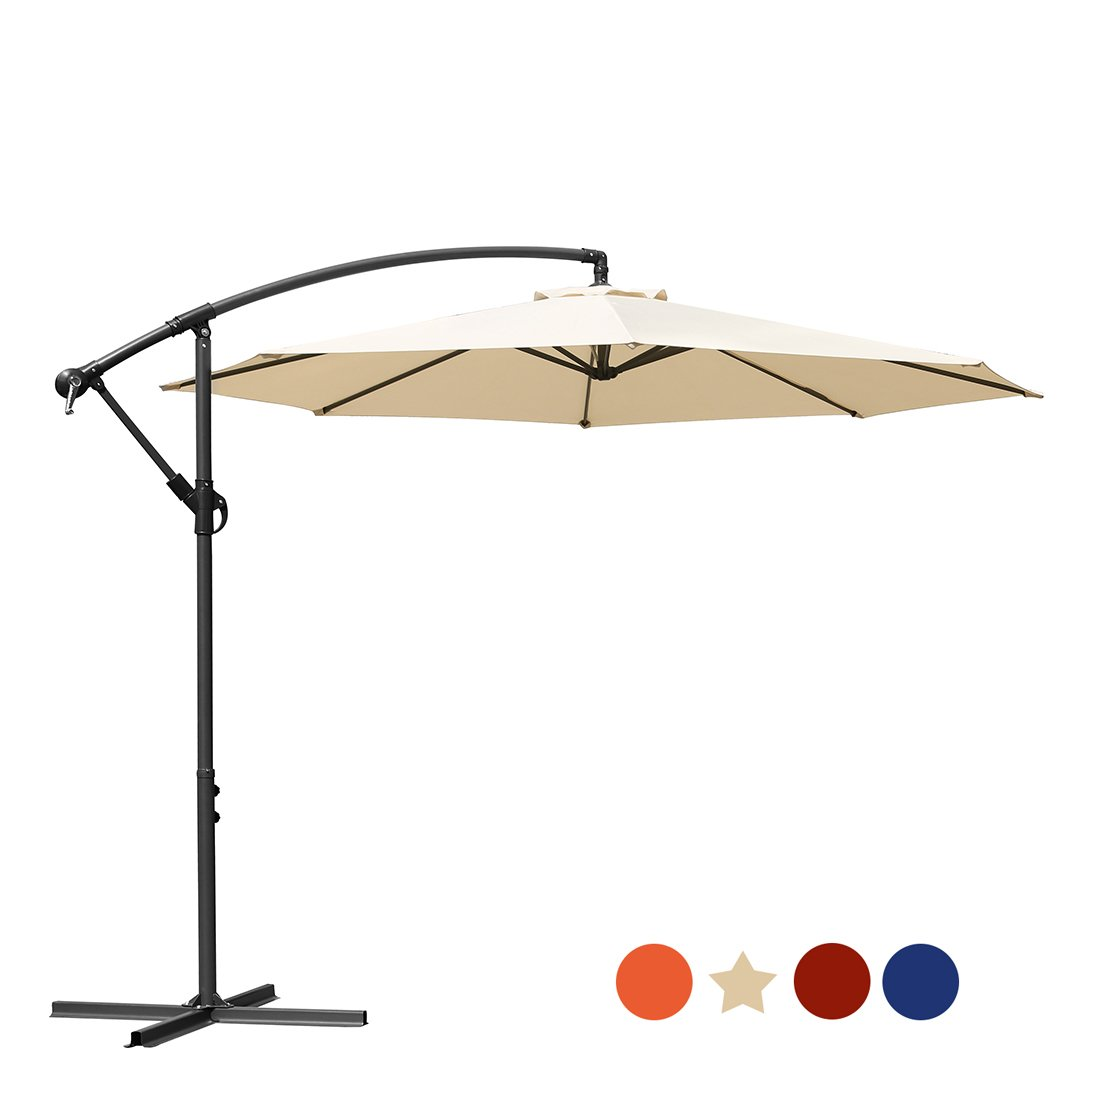 MASVIS Offset Umbrella 10 Ft Cantilever Patio Umbrella Outdoor Market Umbrellas Crank with Cross Base, 8 Ribs (10FT, Beige) by MASVIS (Image #1)